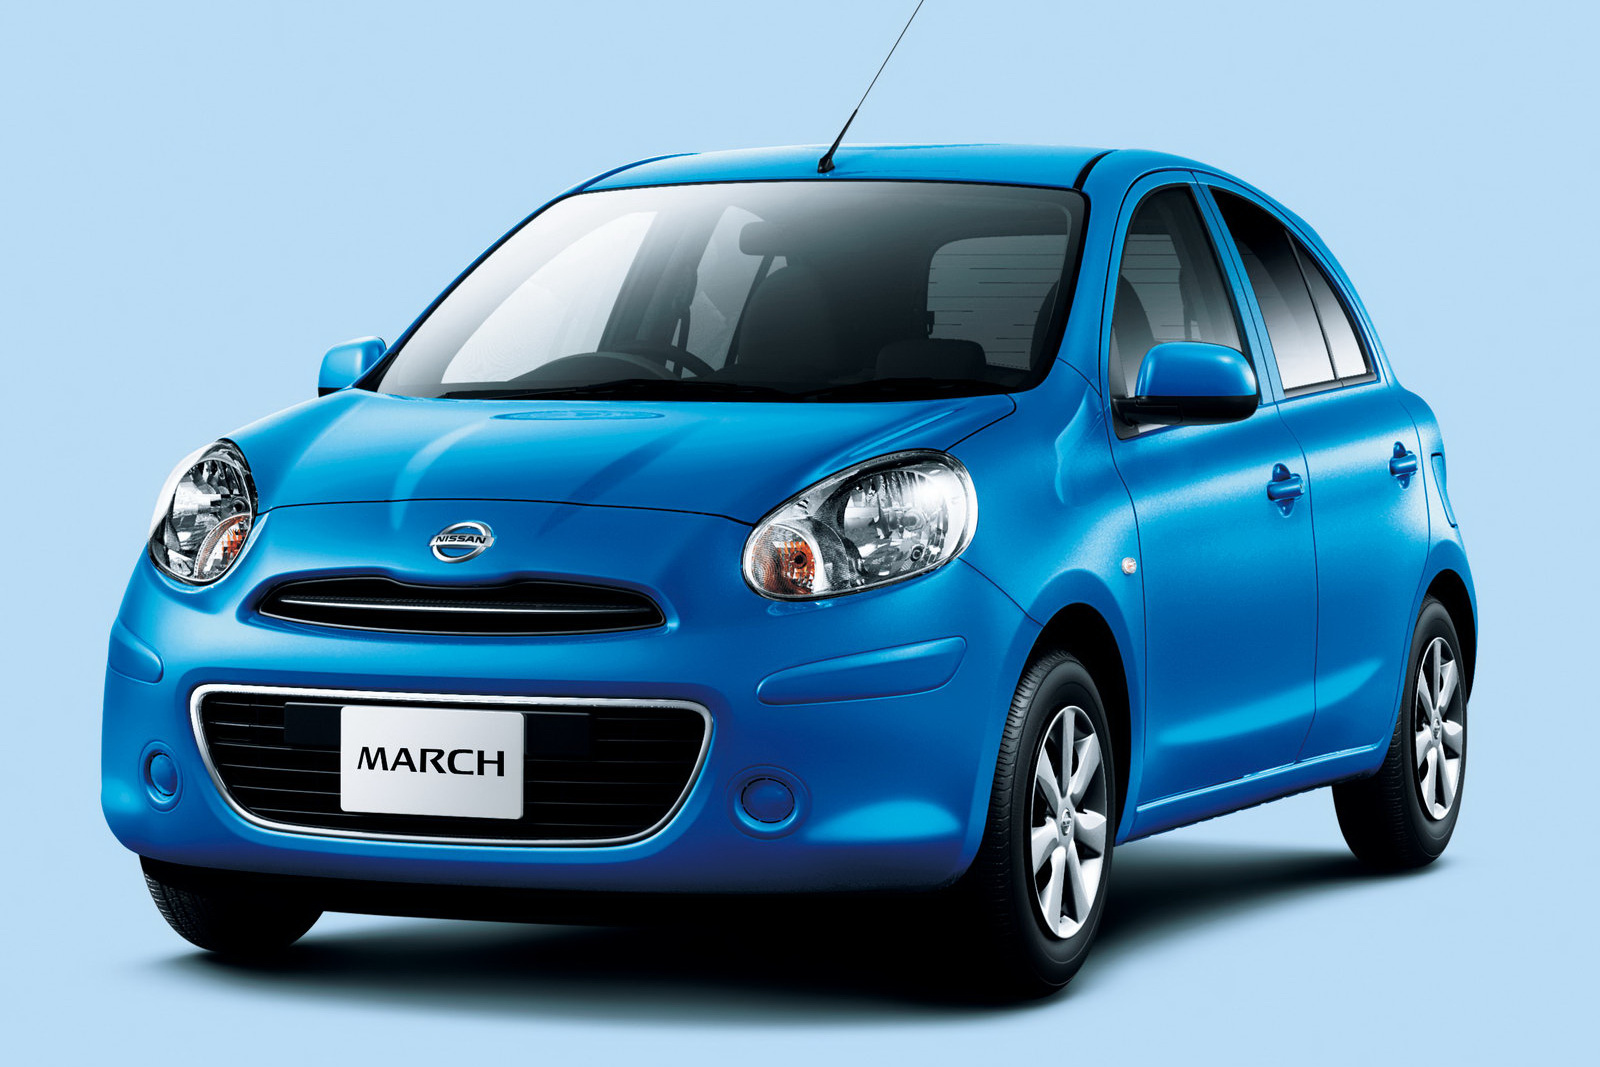 All About Cars: Nissan March